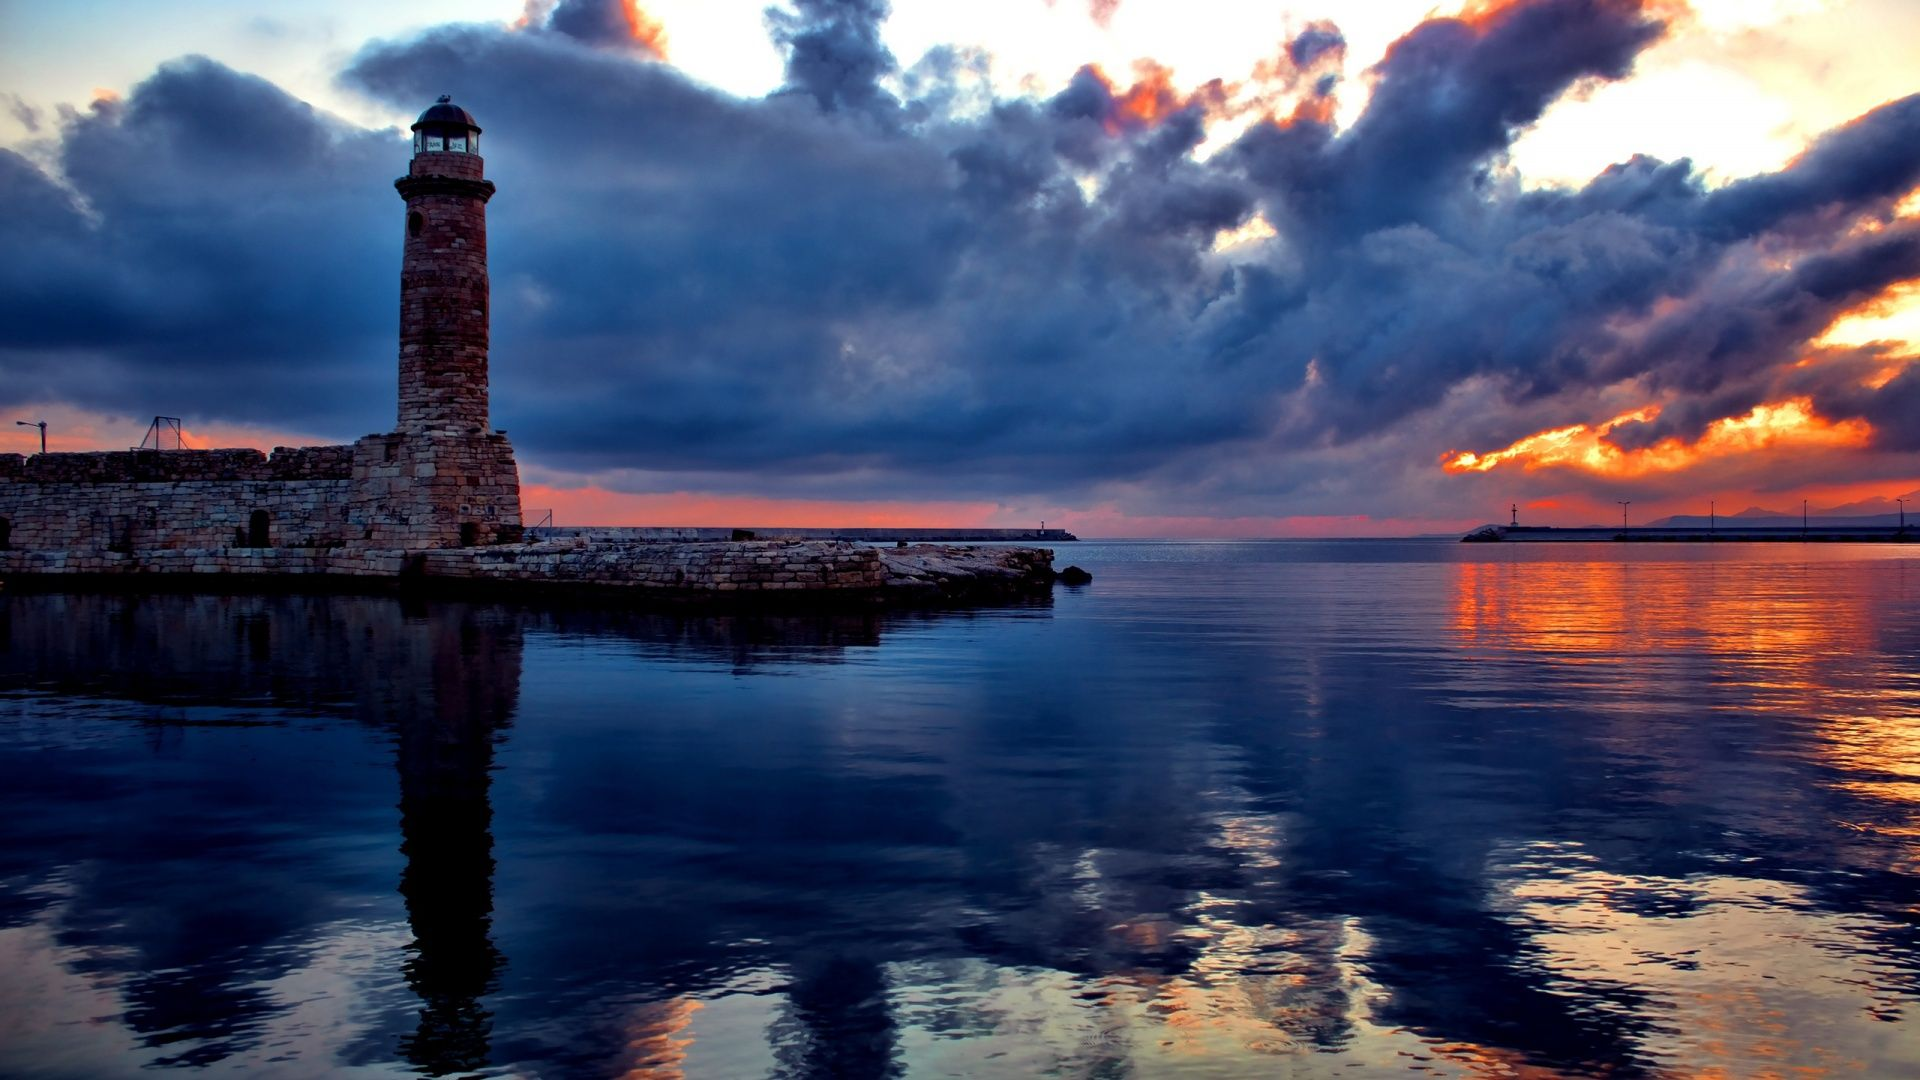 Pics For Gt Beautiful Lighthouses At Sunset Lighthouses Pinterest Beautiful Love And Love This